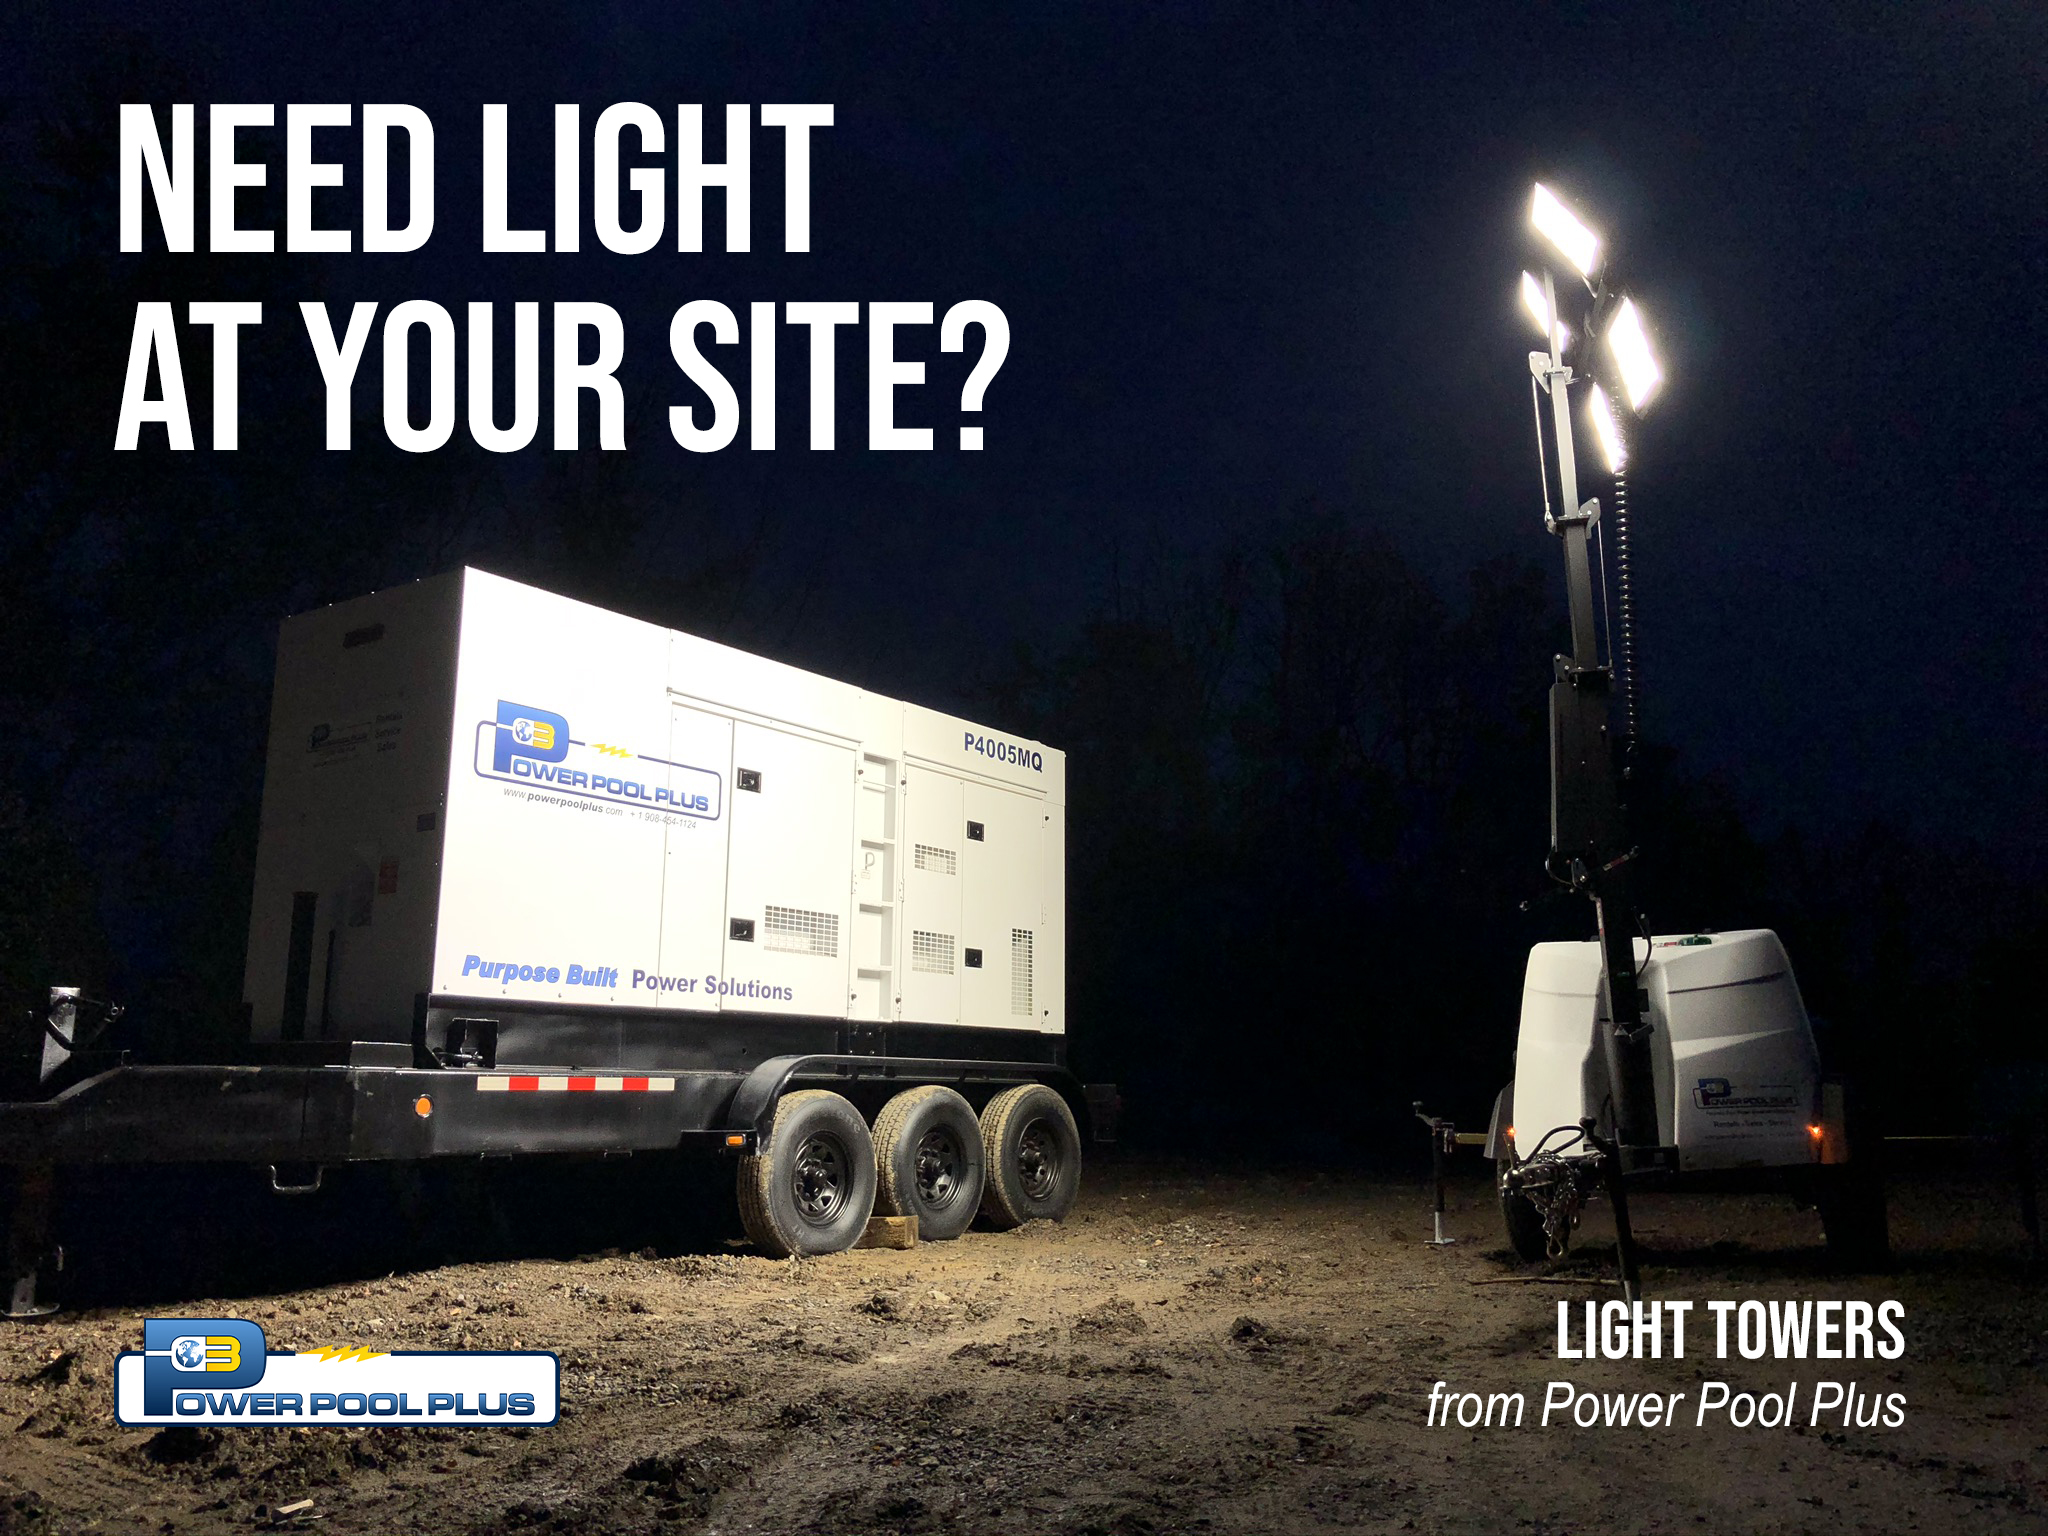 Light Towers for Sale or Rent by Power Pool Plus